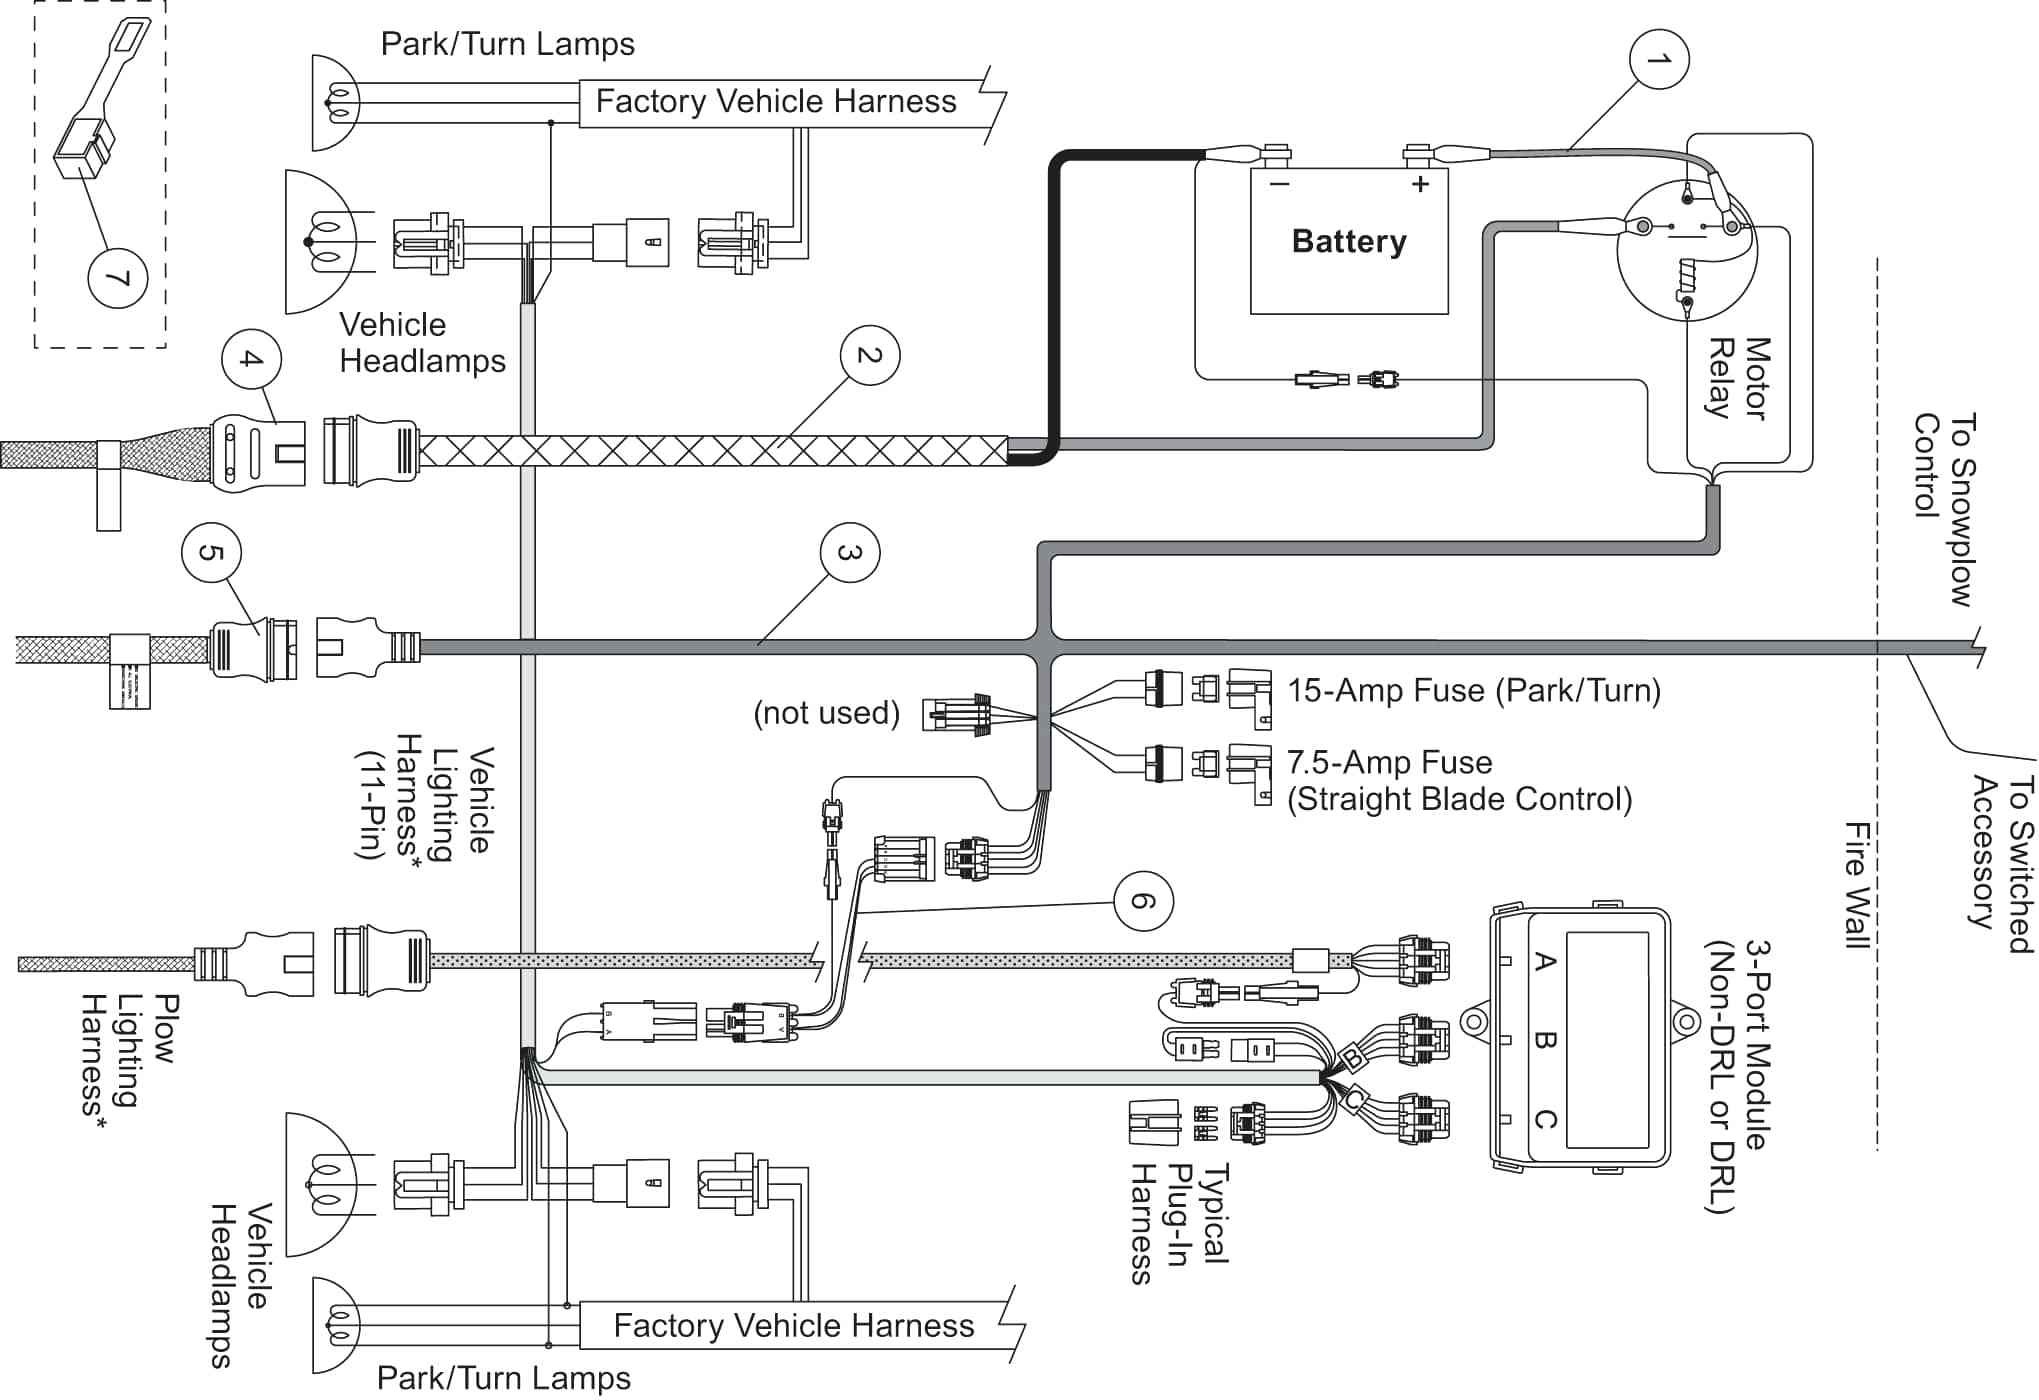 Boss Bv9967bi Wiring Diagram Trusted Wiring Diagrams \u2022 Western Cable Plow  Wiring Diagram Boss Plow Connector Diagram